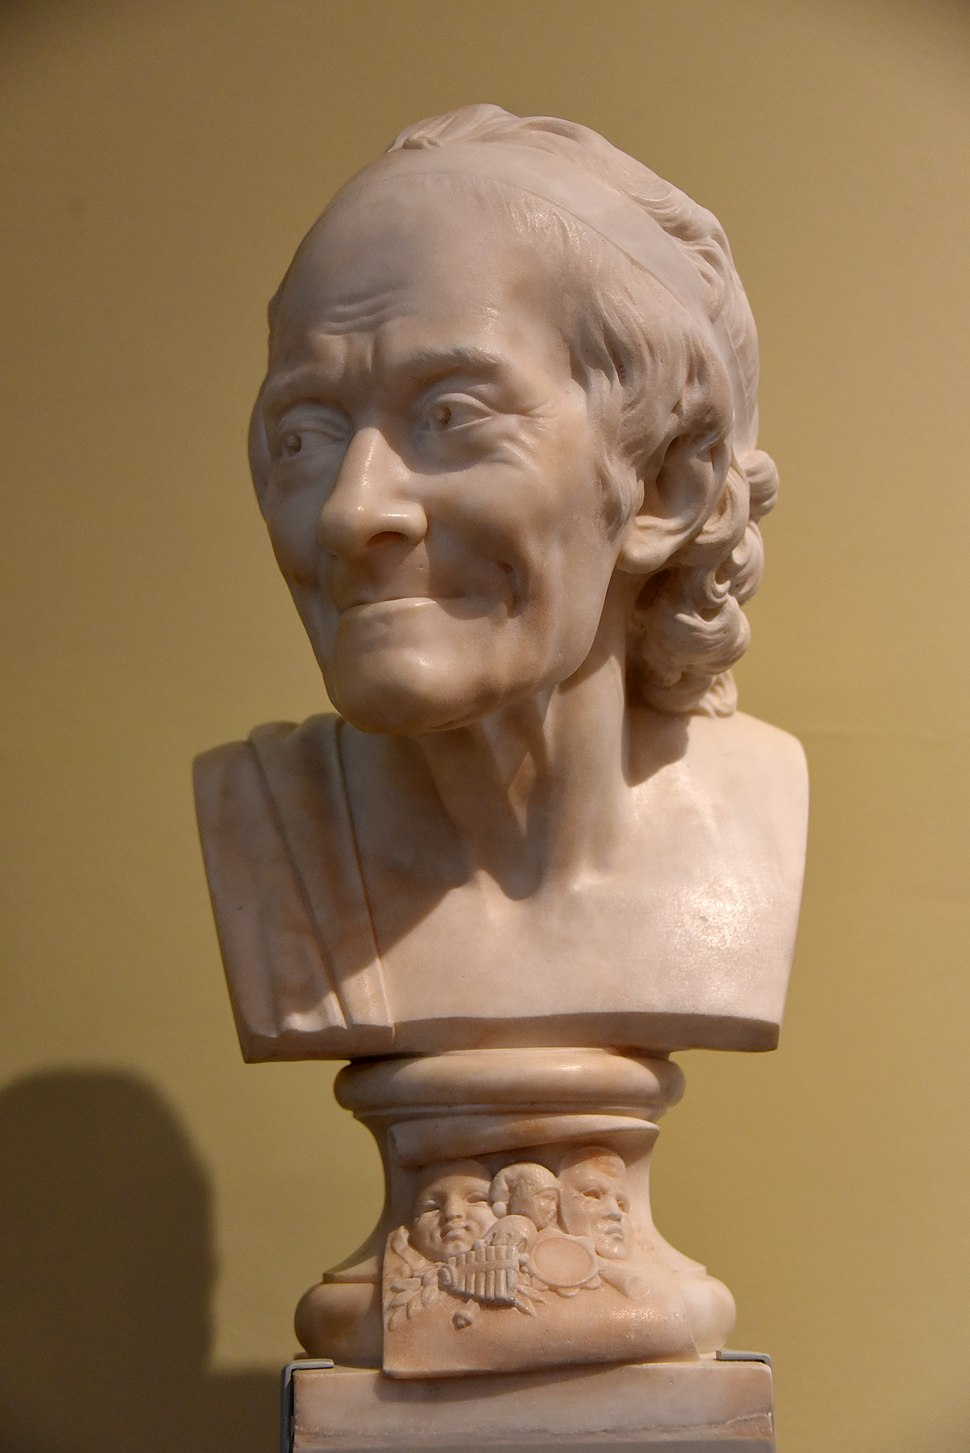 Marble bust of Voltaire, 1870-1900 CE. From France. After Jean-Antoine Houdon. The Victoria and Albert Museum, London